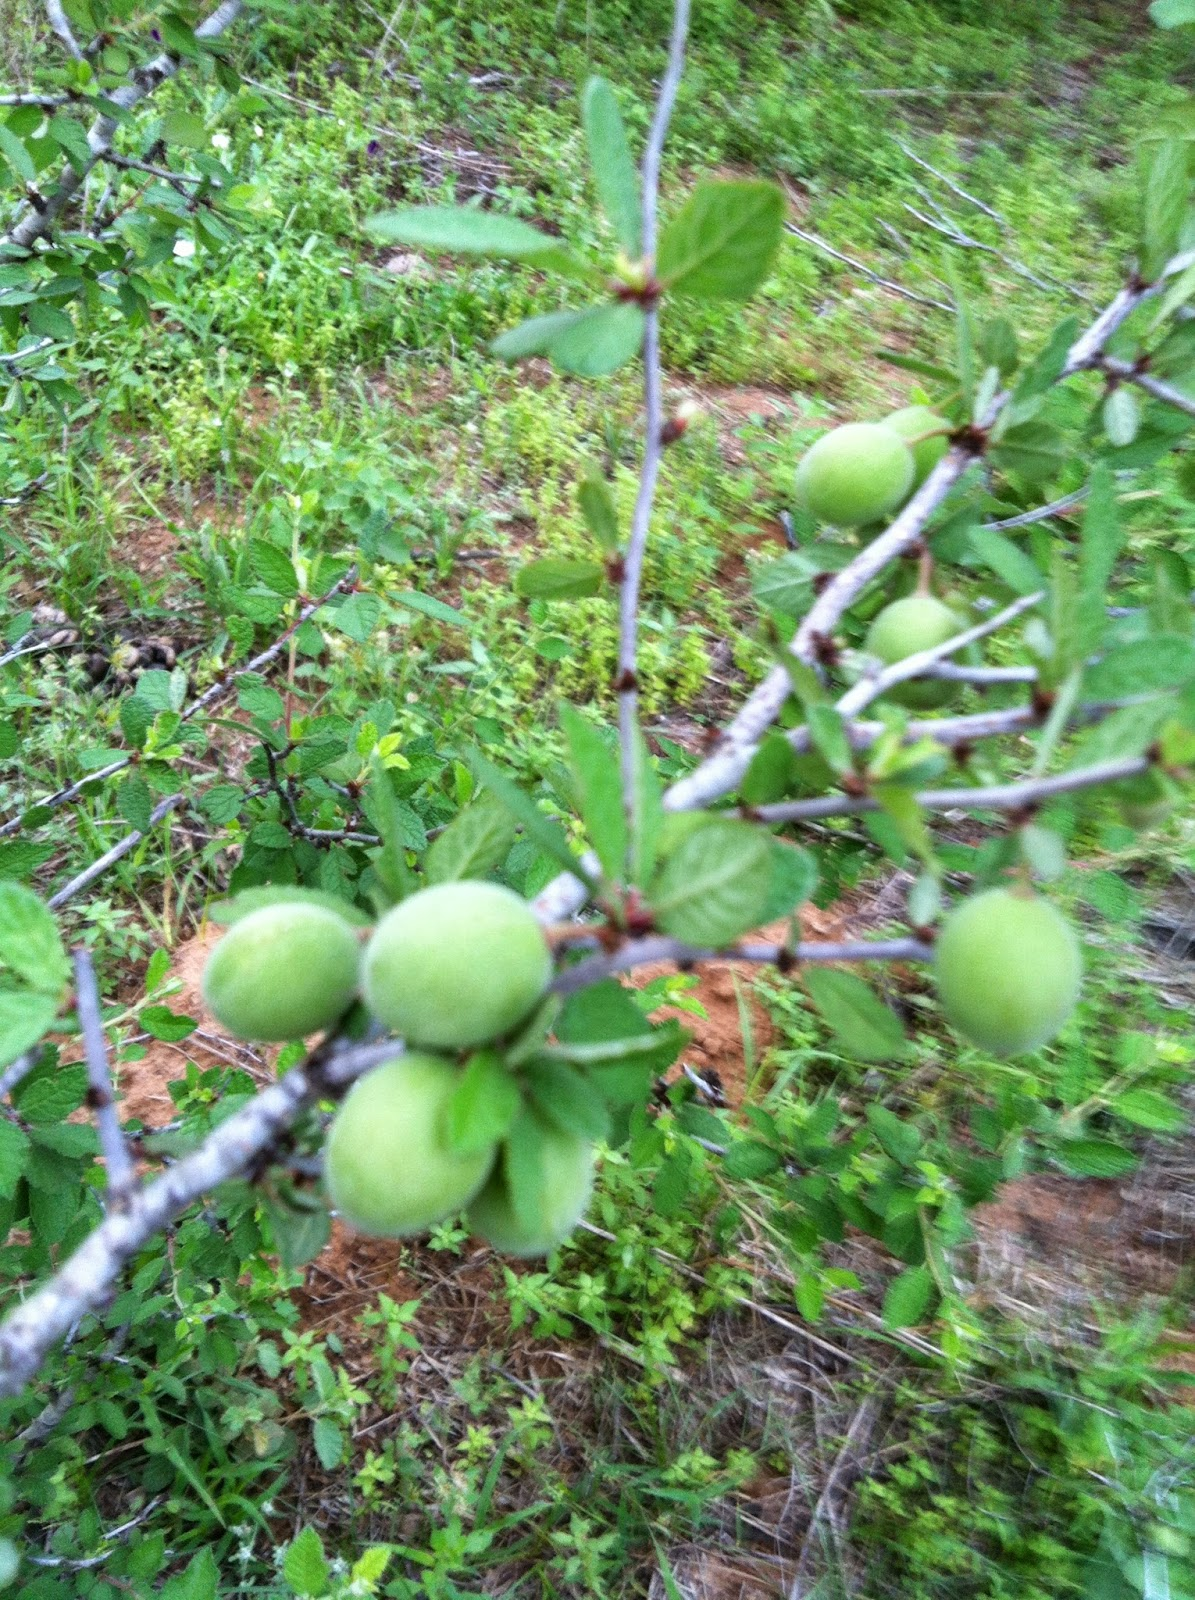 Here At The Old Woods Roamer S Hideout We Ve Got Duraznillo Growing In Clumps Within A Few Yards Of Cabin But Getting Taste Sweet Fruit Is